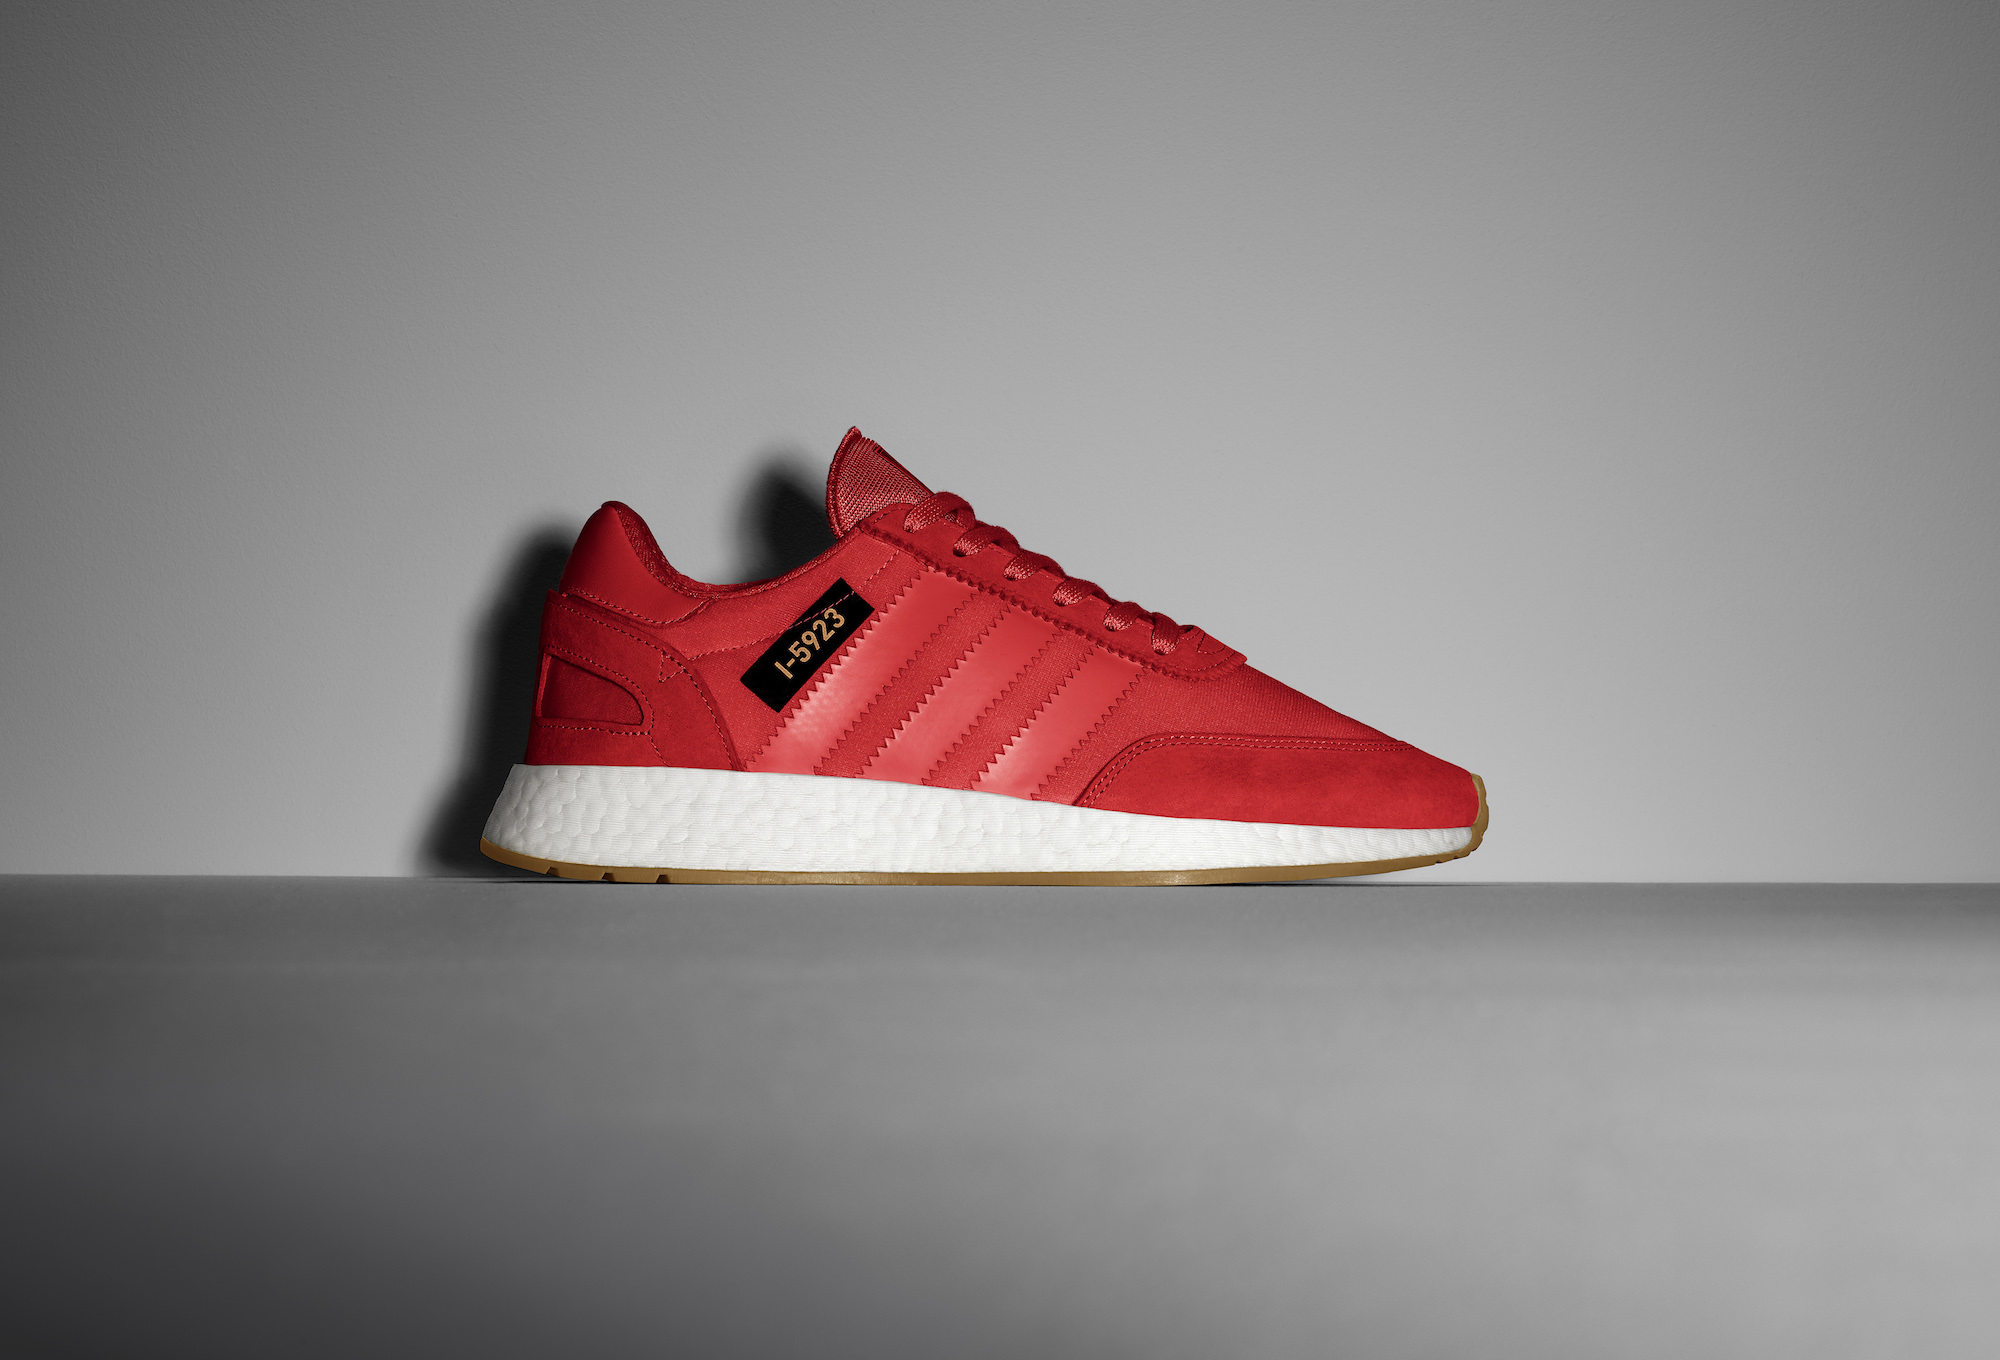 The adidas Iniki Has Been Renamed the I-5923, Will Release